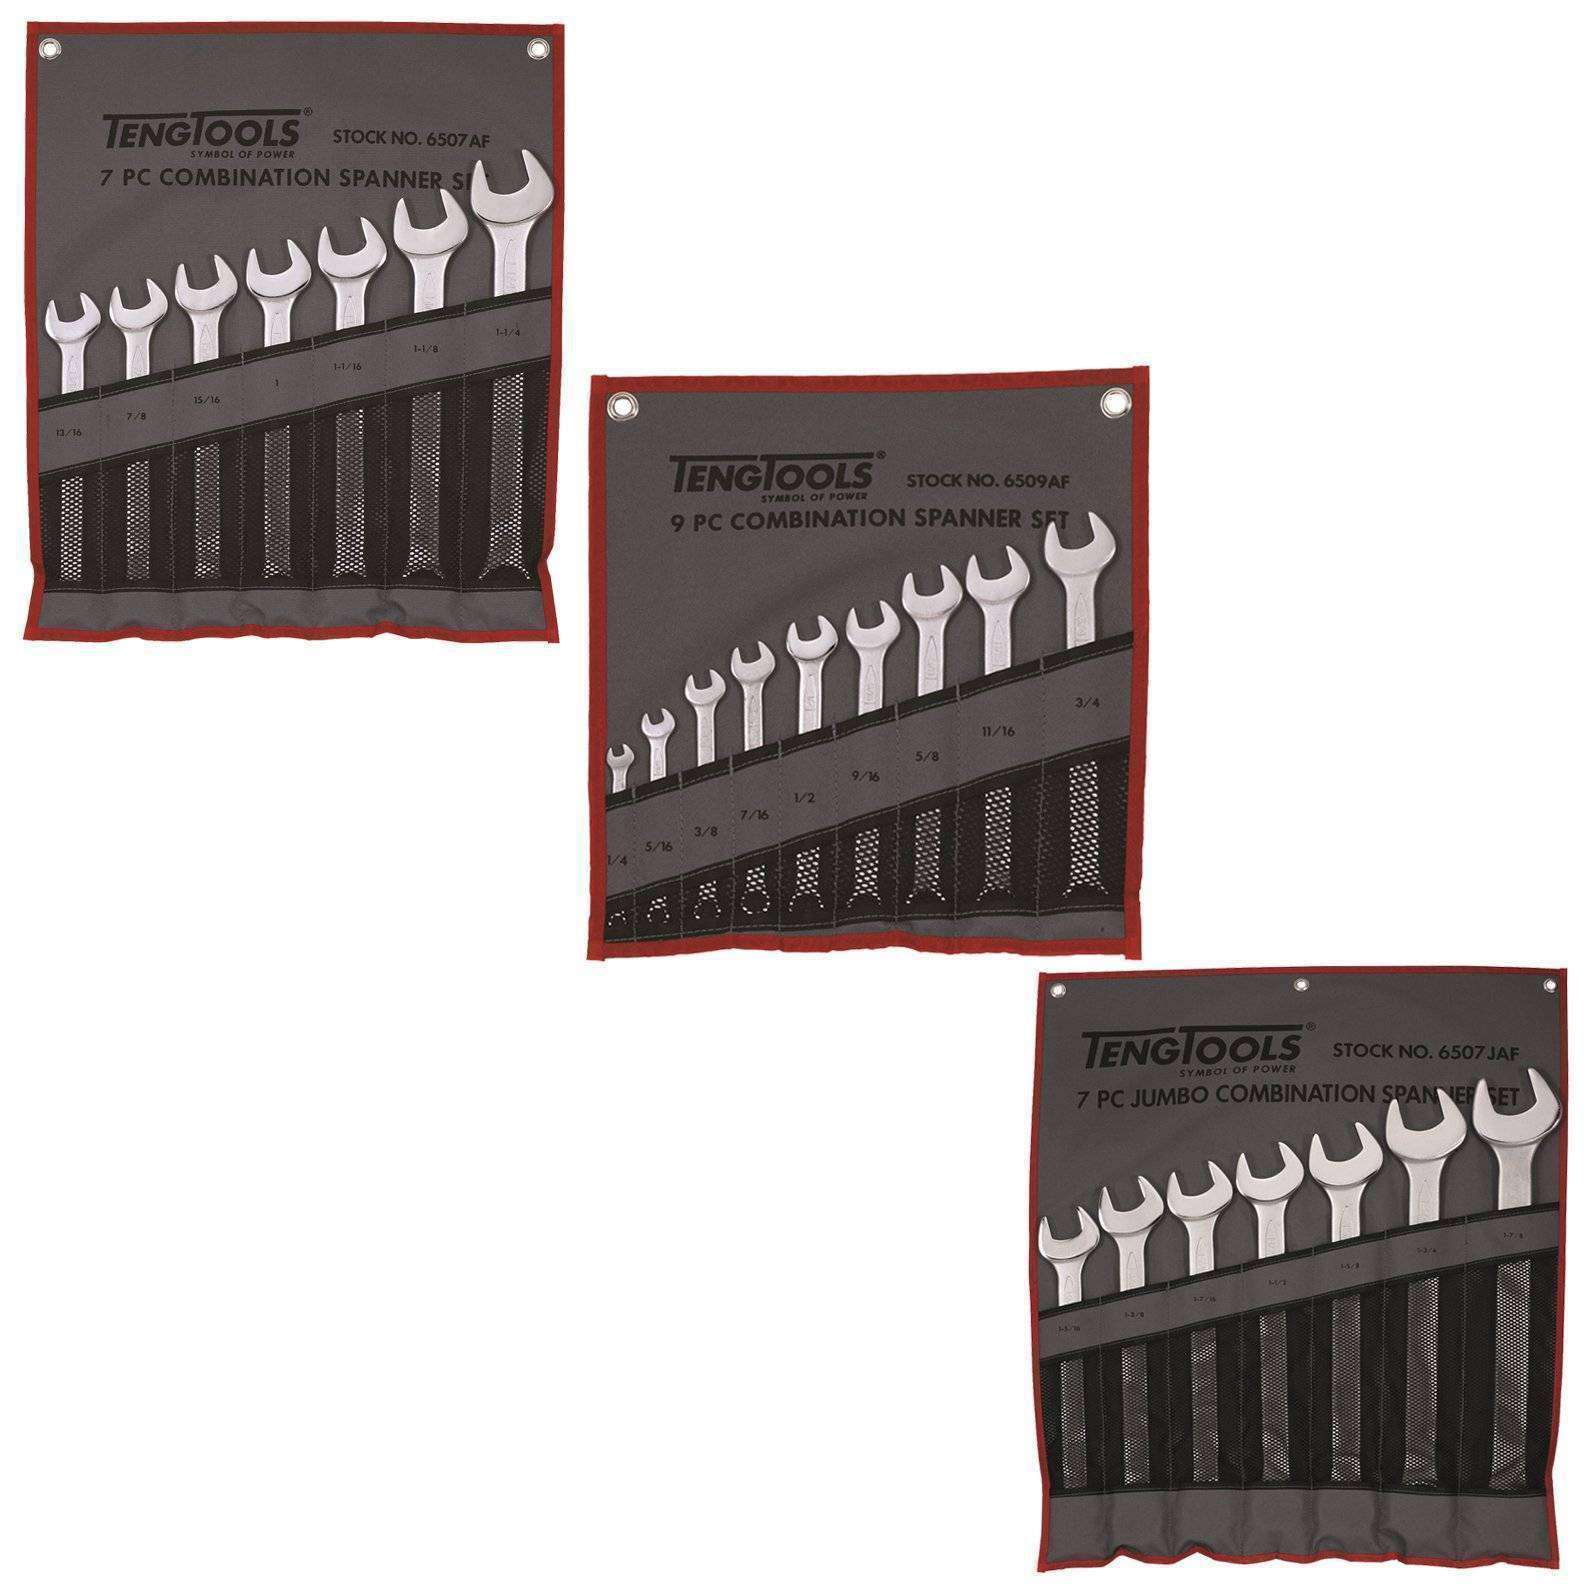 Teng Tools - 23 Piece Combination Spanner Set - TEN-O-6507AF-KIT1 - Teng Tools USA